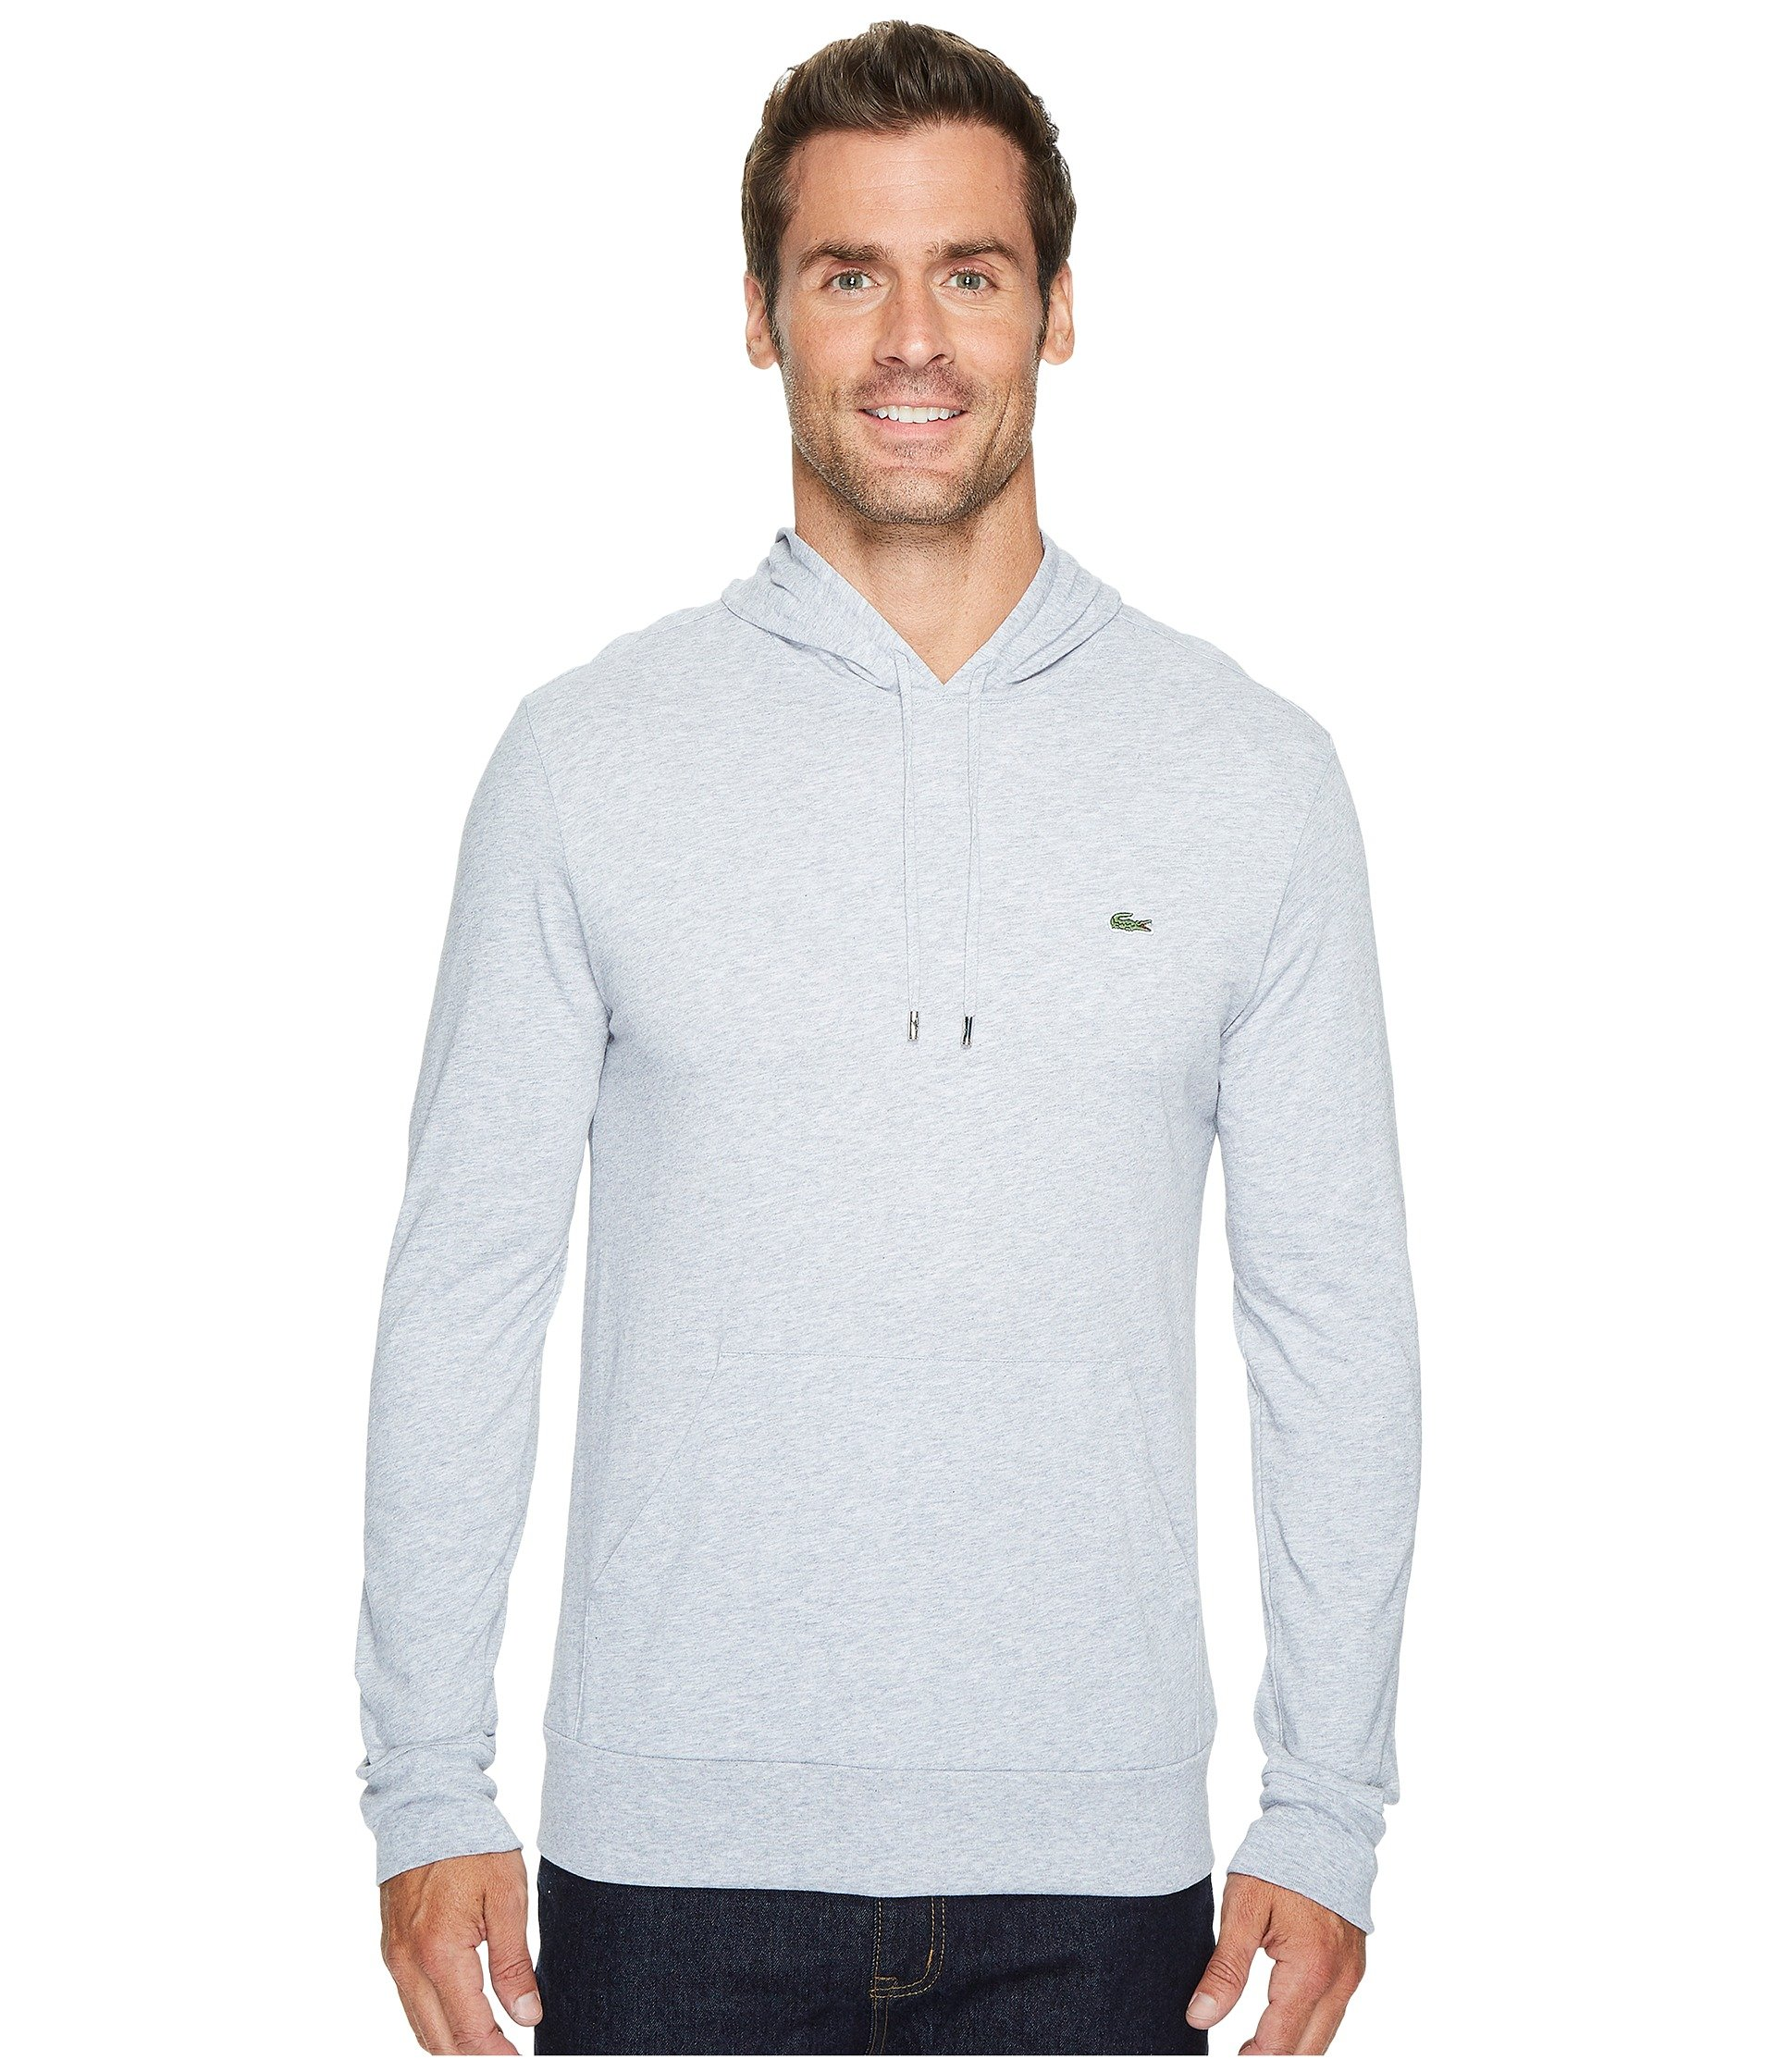 T shirt Hoodie Silver Chine Jersey Lacoste Fq5wA6q